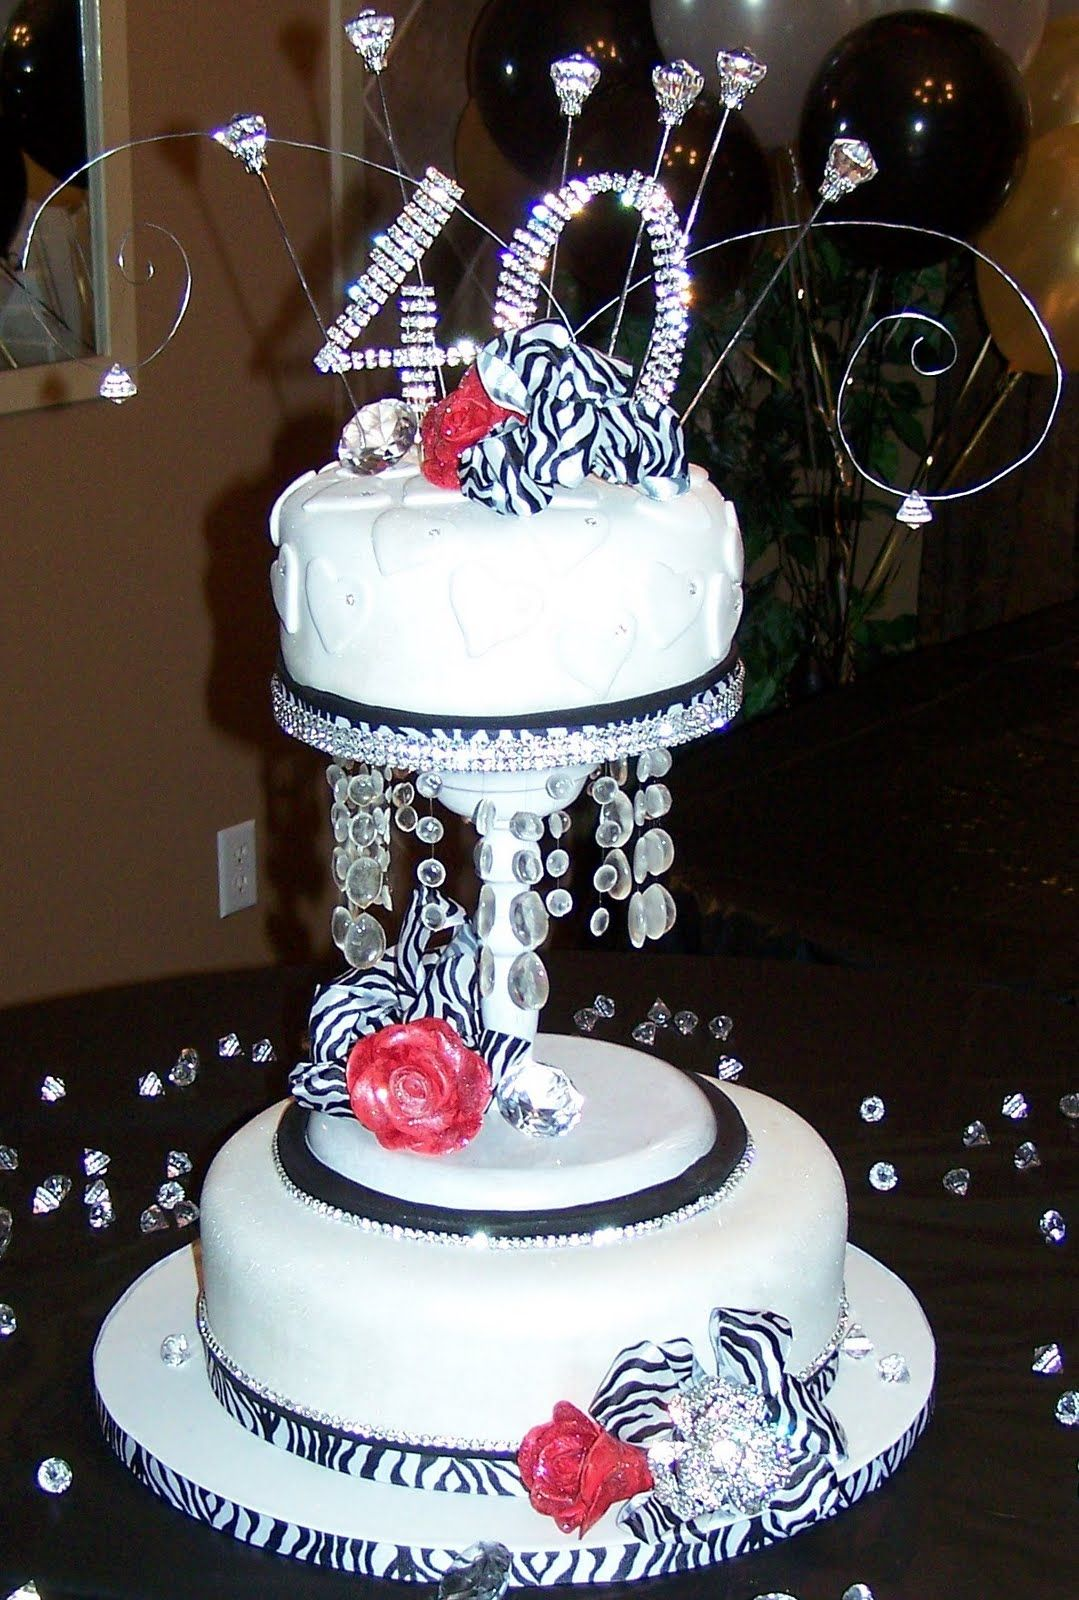 Bling birthday cake designs Pin 40th Birthday Cake Ideas For